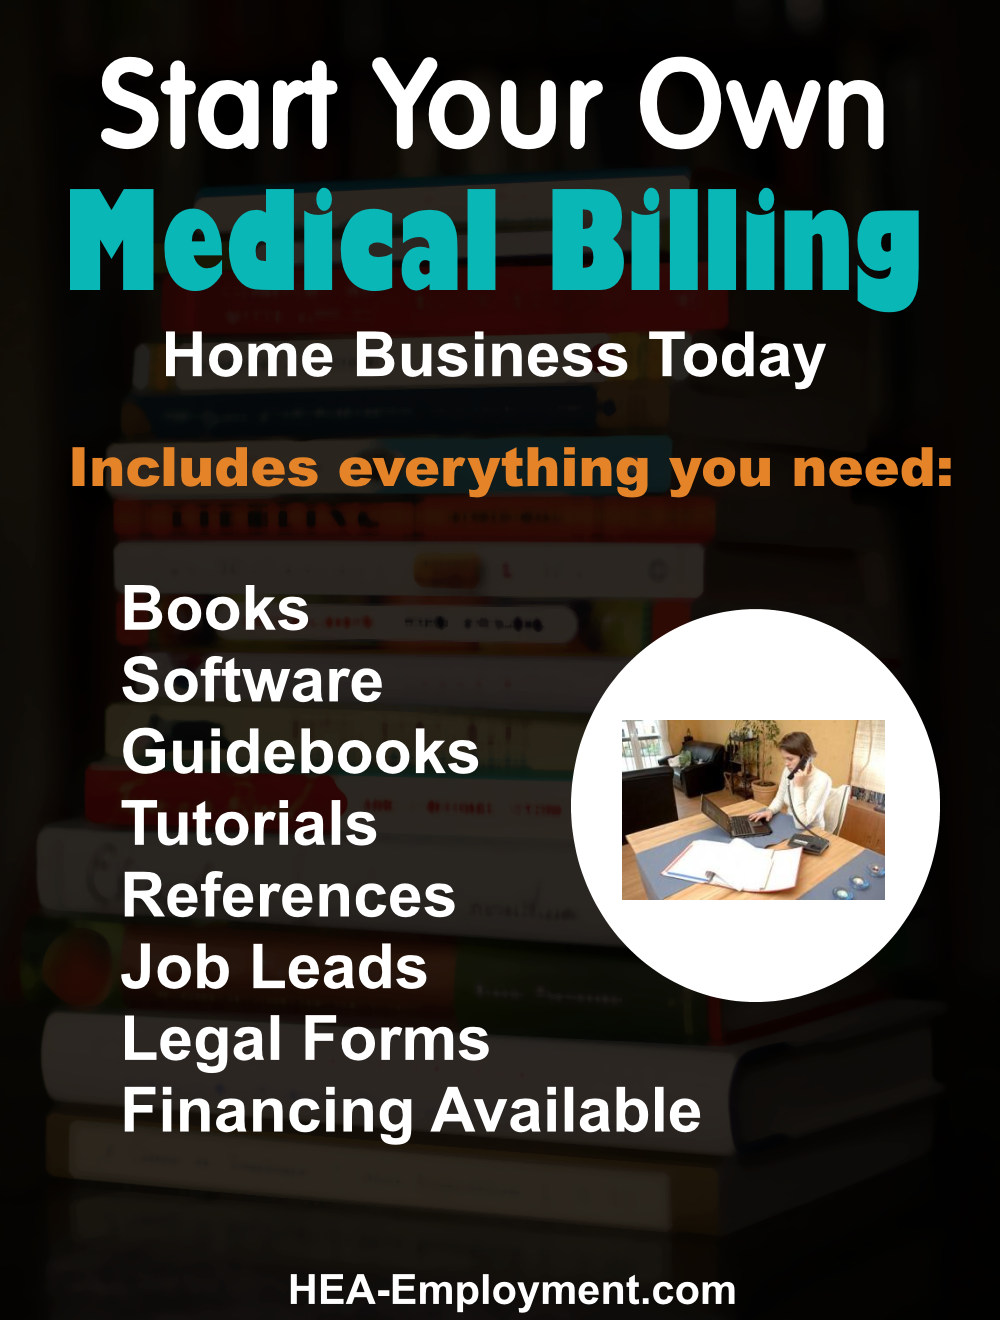 Start your own medical billing legitimate home based business. Fully equipped home business package with everything you need to get started. Productivity software, tutorials, guidebooks, references, manuals, tax advice and legal forms are included with each kit. Be your own boss!